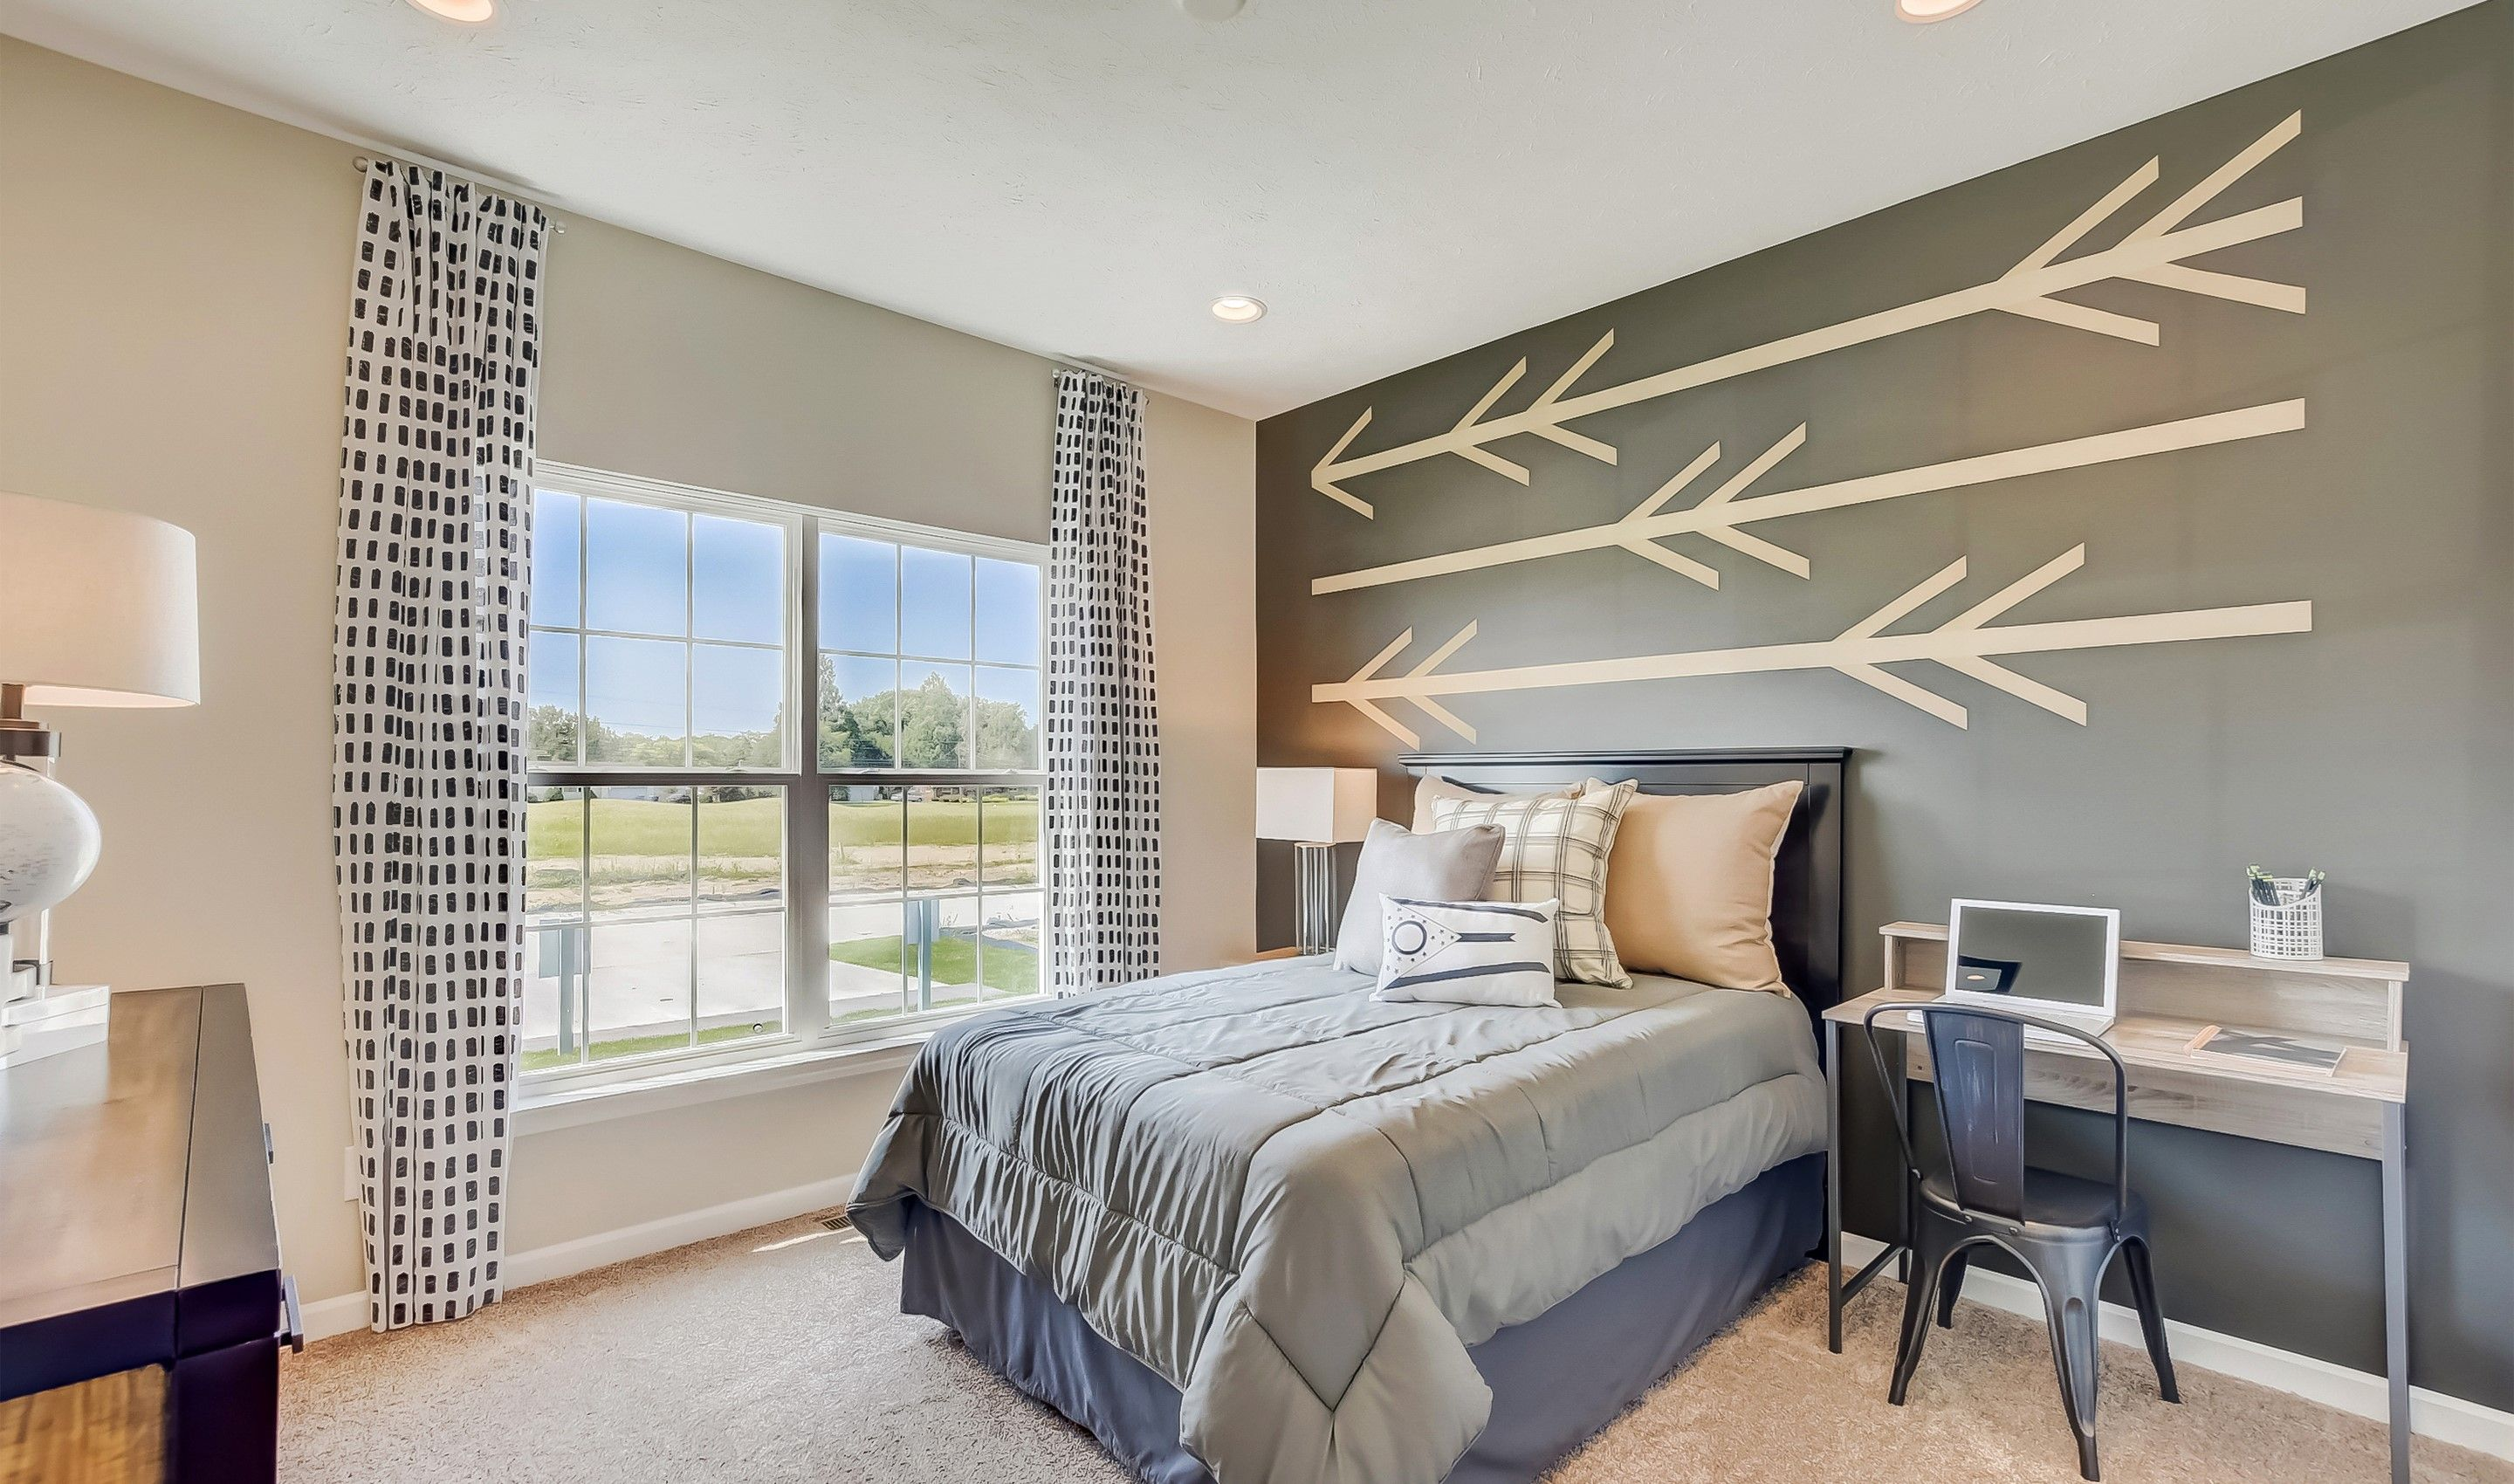 Bedroom featured in the Eastwood By K. Hovnanian® Homes in Hilton Head, SC